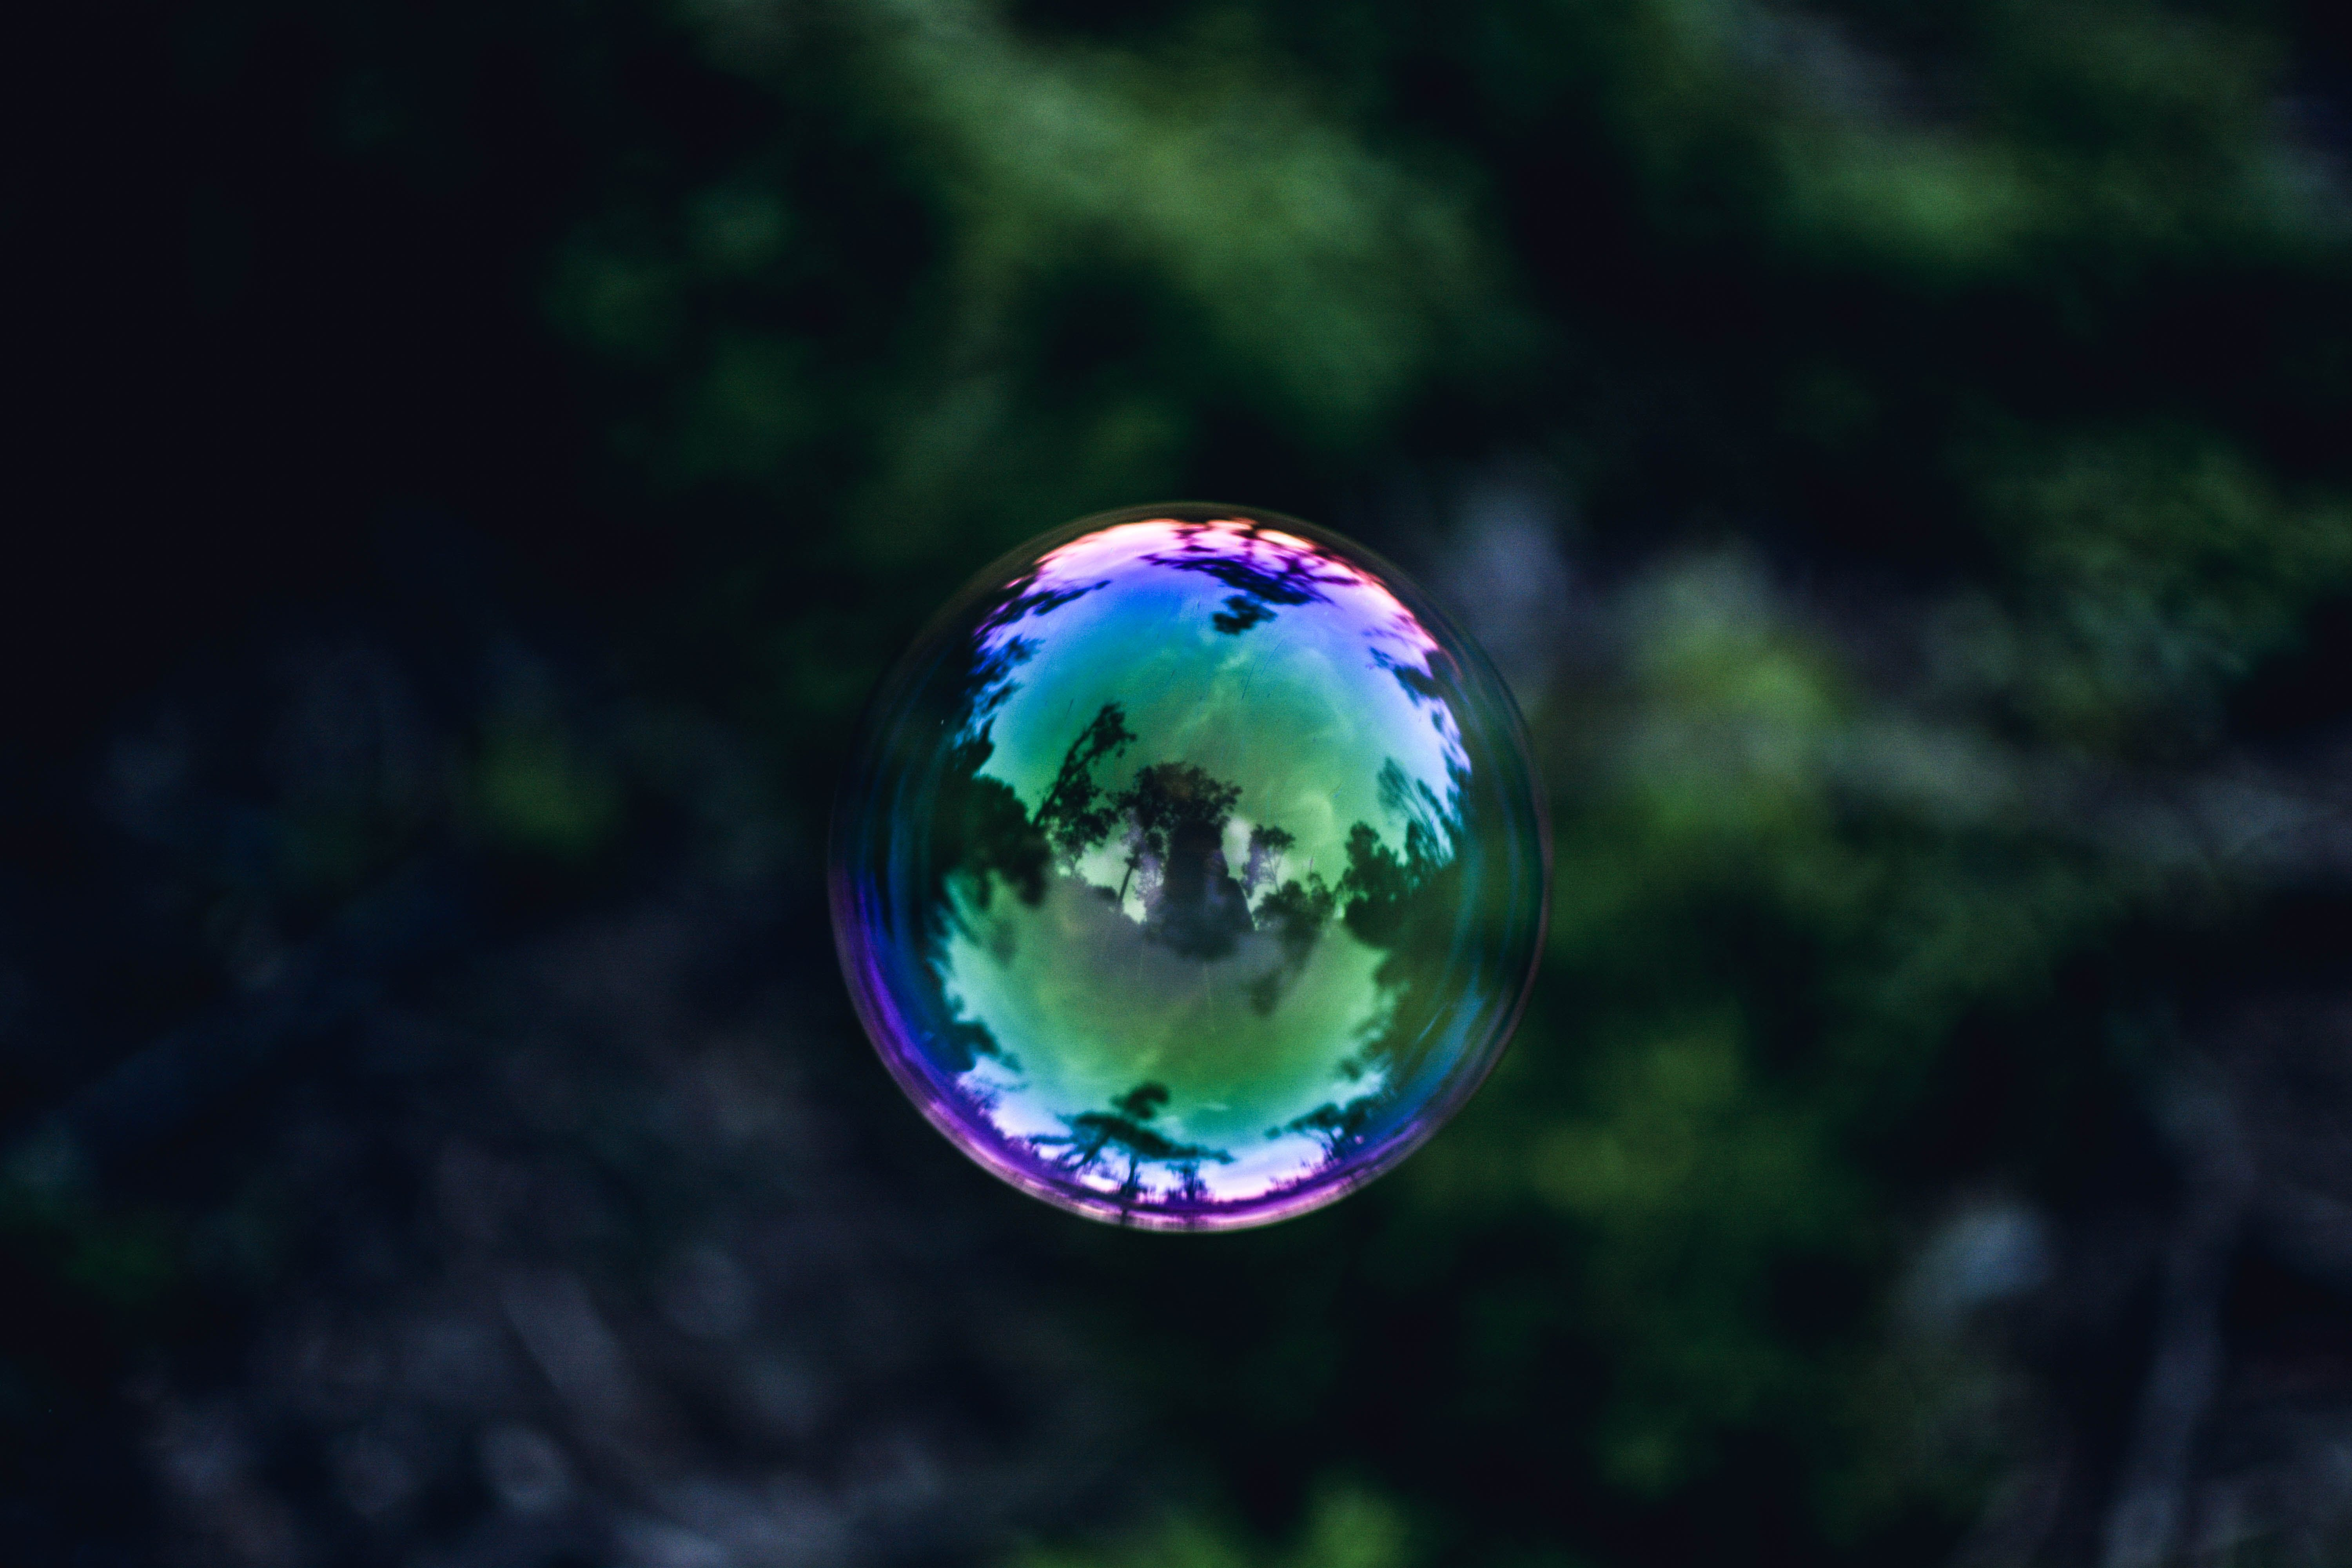 Blue, Green, and Pink Glass Ball